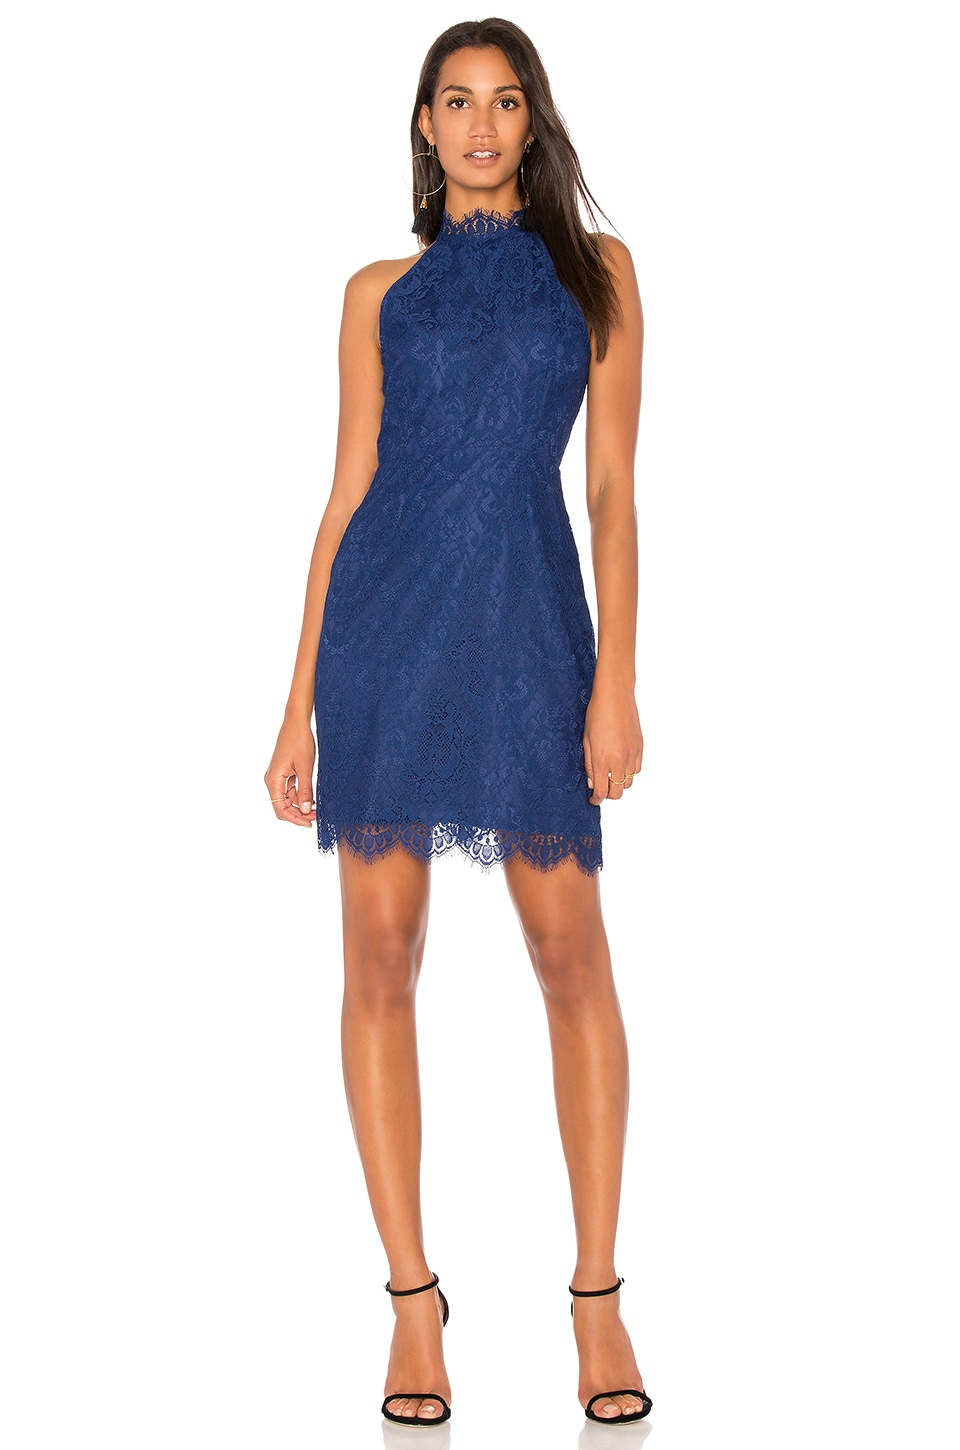 BB Dakota Cherie Dress in Deep Blue